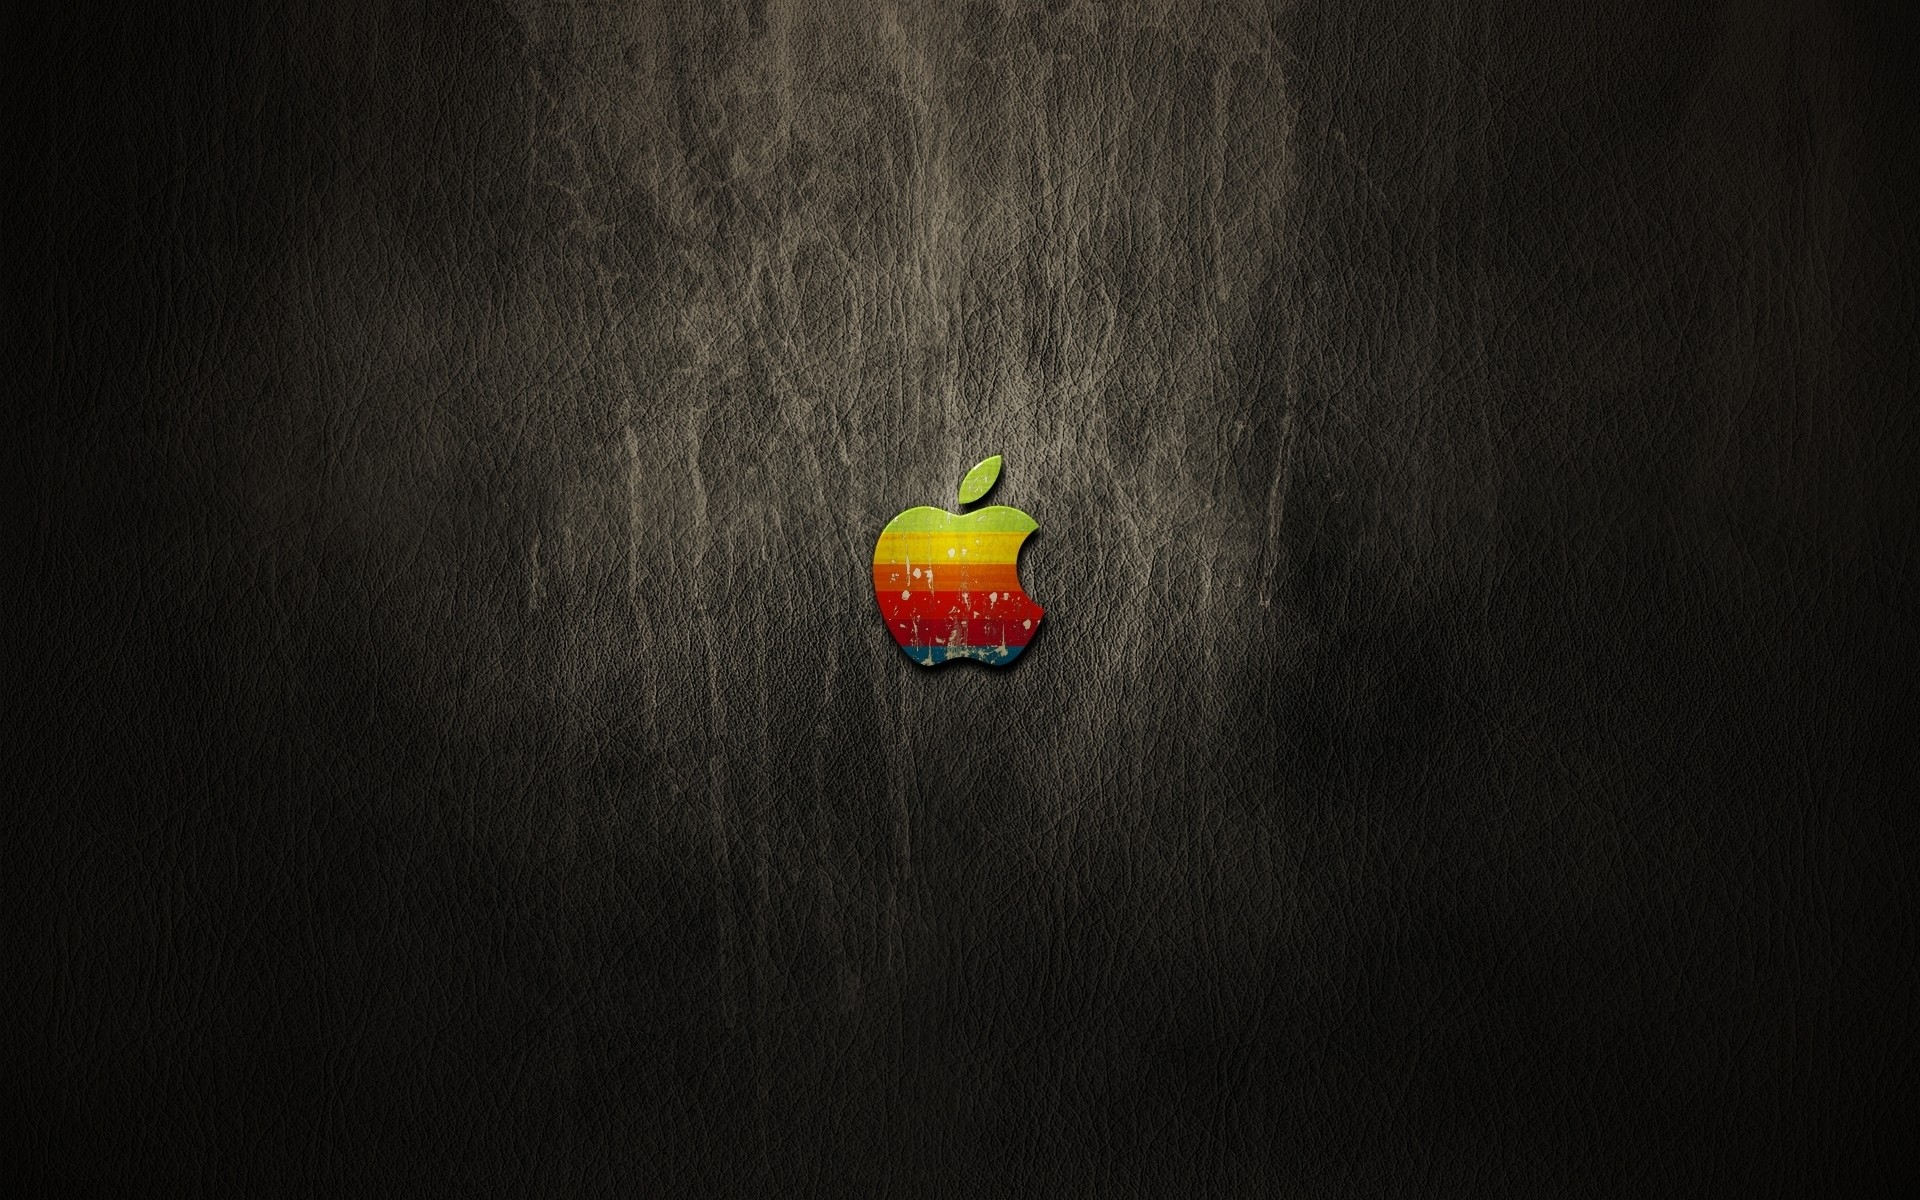 1920x1080 iphone wallpapers: 36+ Apple Wallpapers ·① Download Free Cool HD Backgrounds